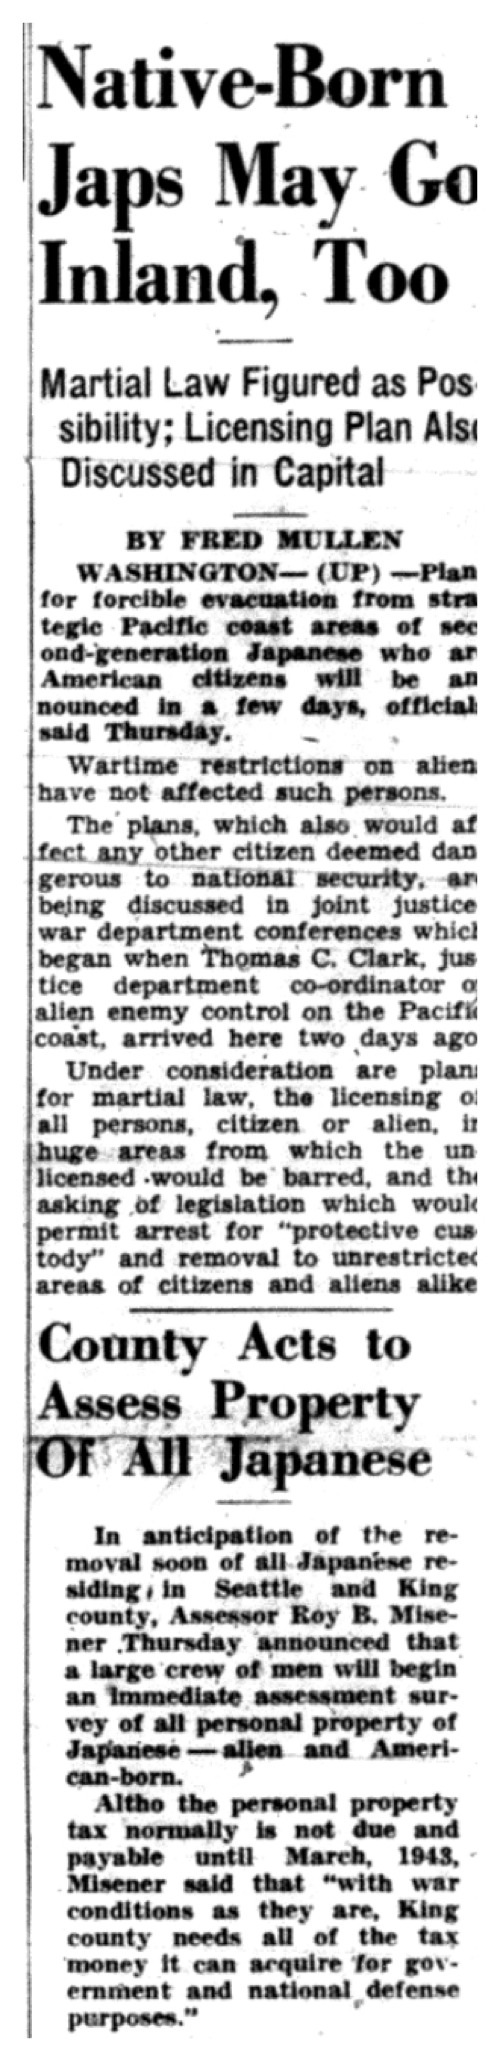 seattle star a 18 1942 article announcing that ese american citizens along alien ese will be evacauated to internment camps